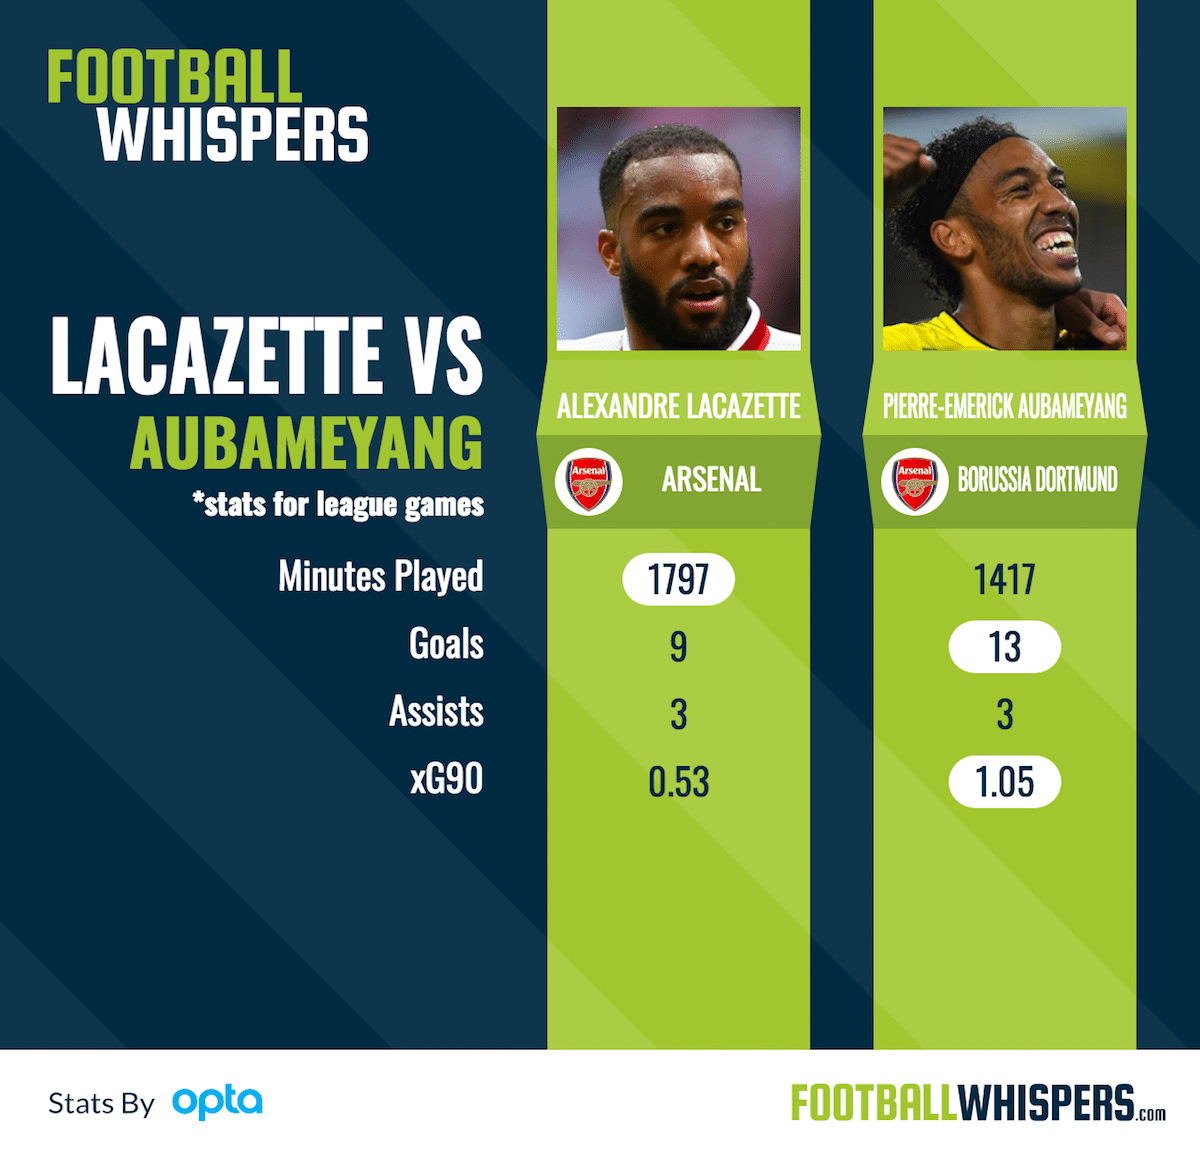 Lacazette-Aubameyang comparison